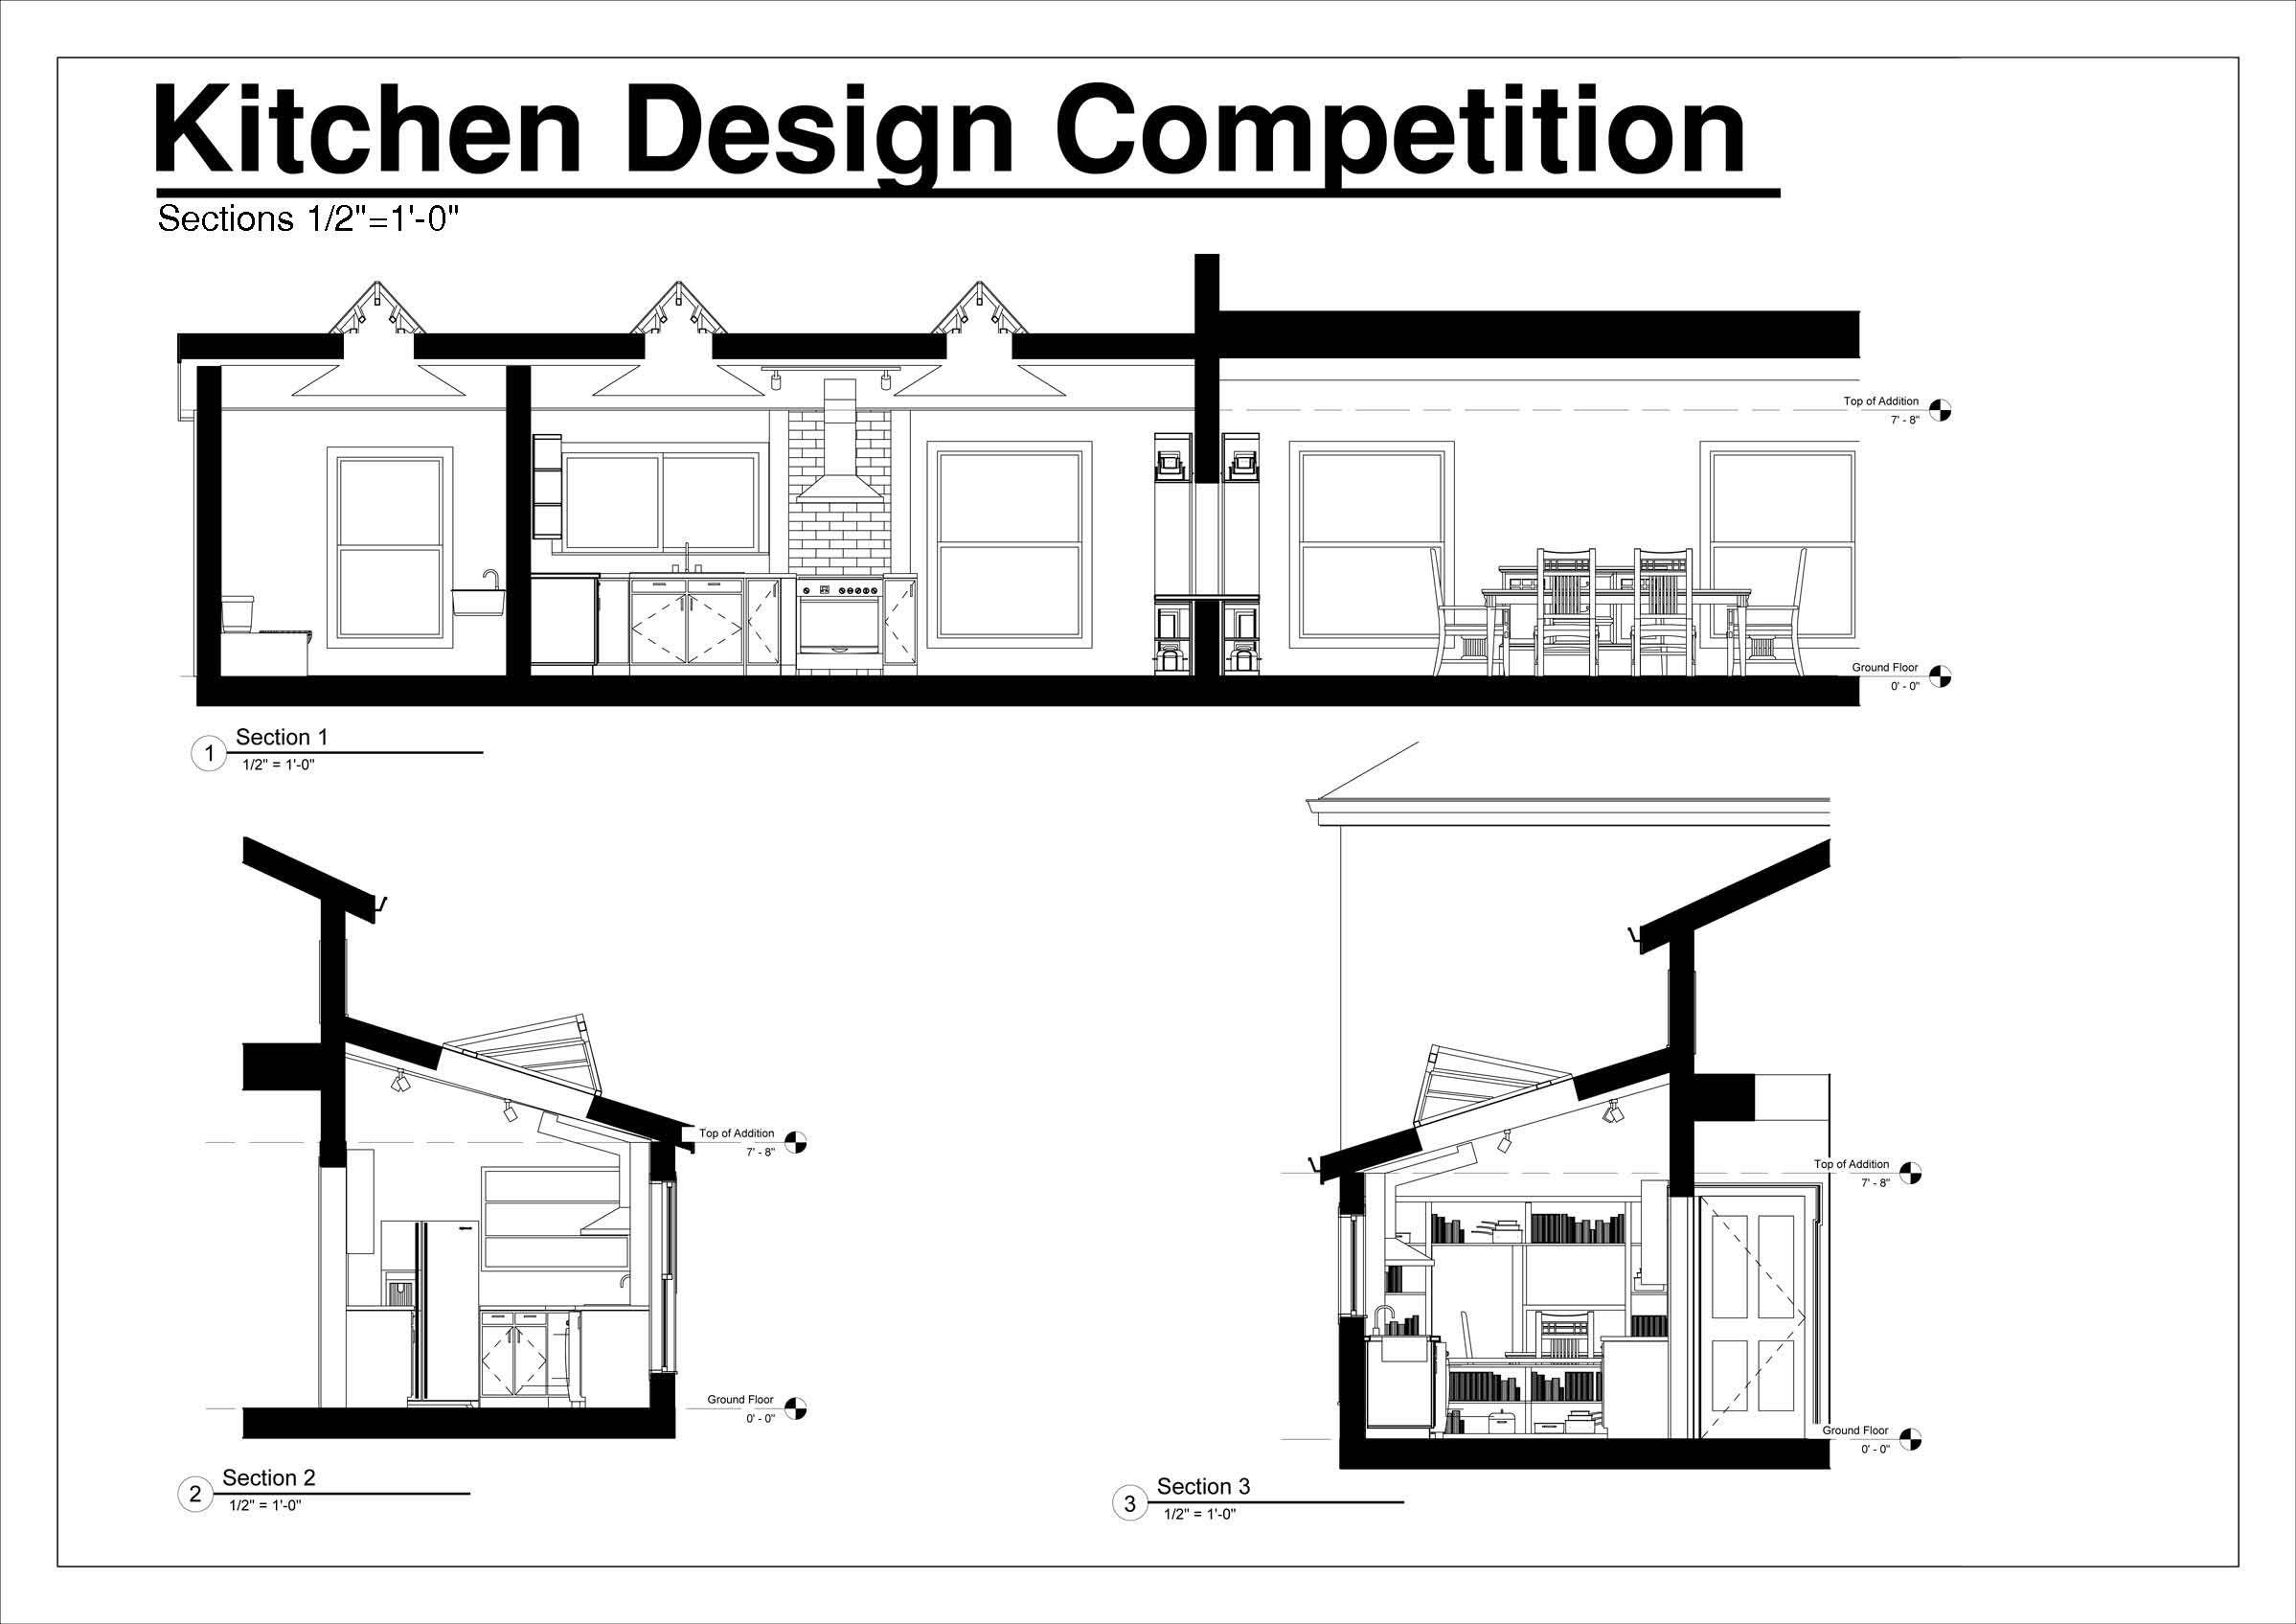 Kitchen design designed by sam herschorn historic public for V kitchen ann arbor address